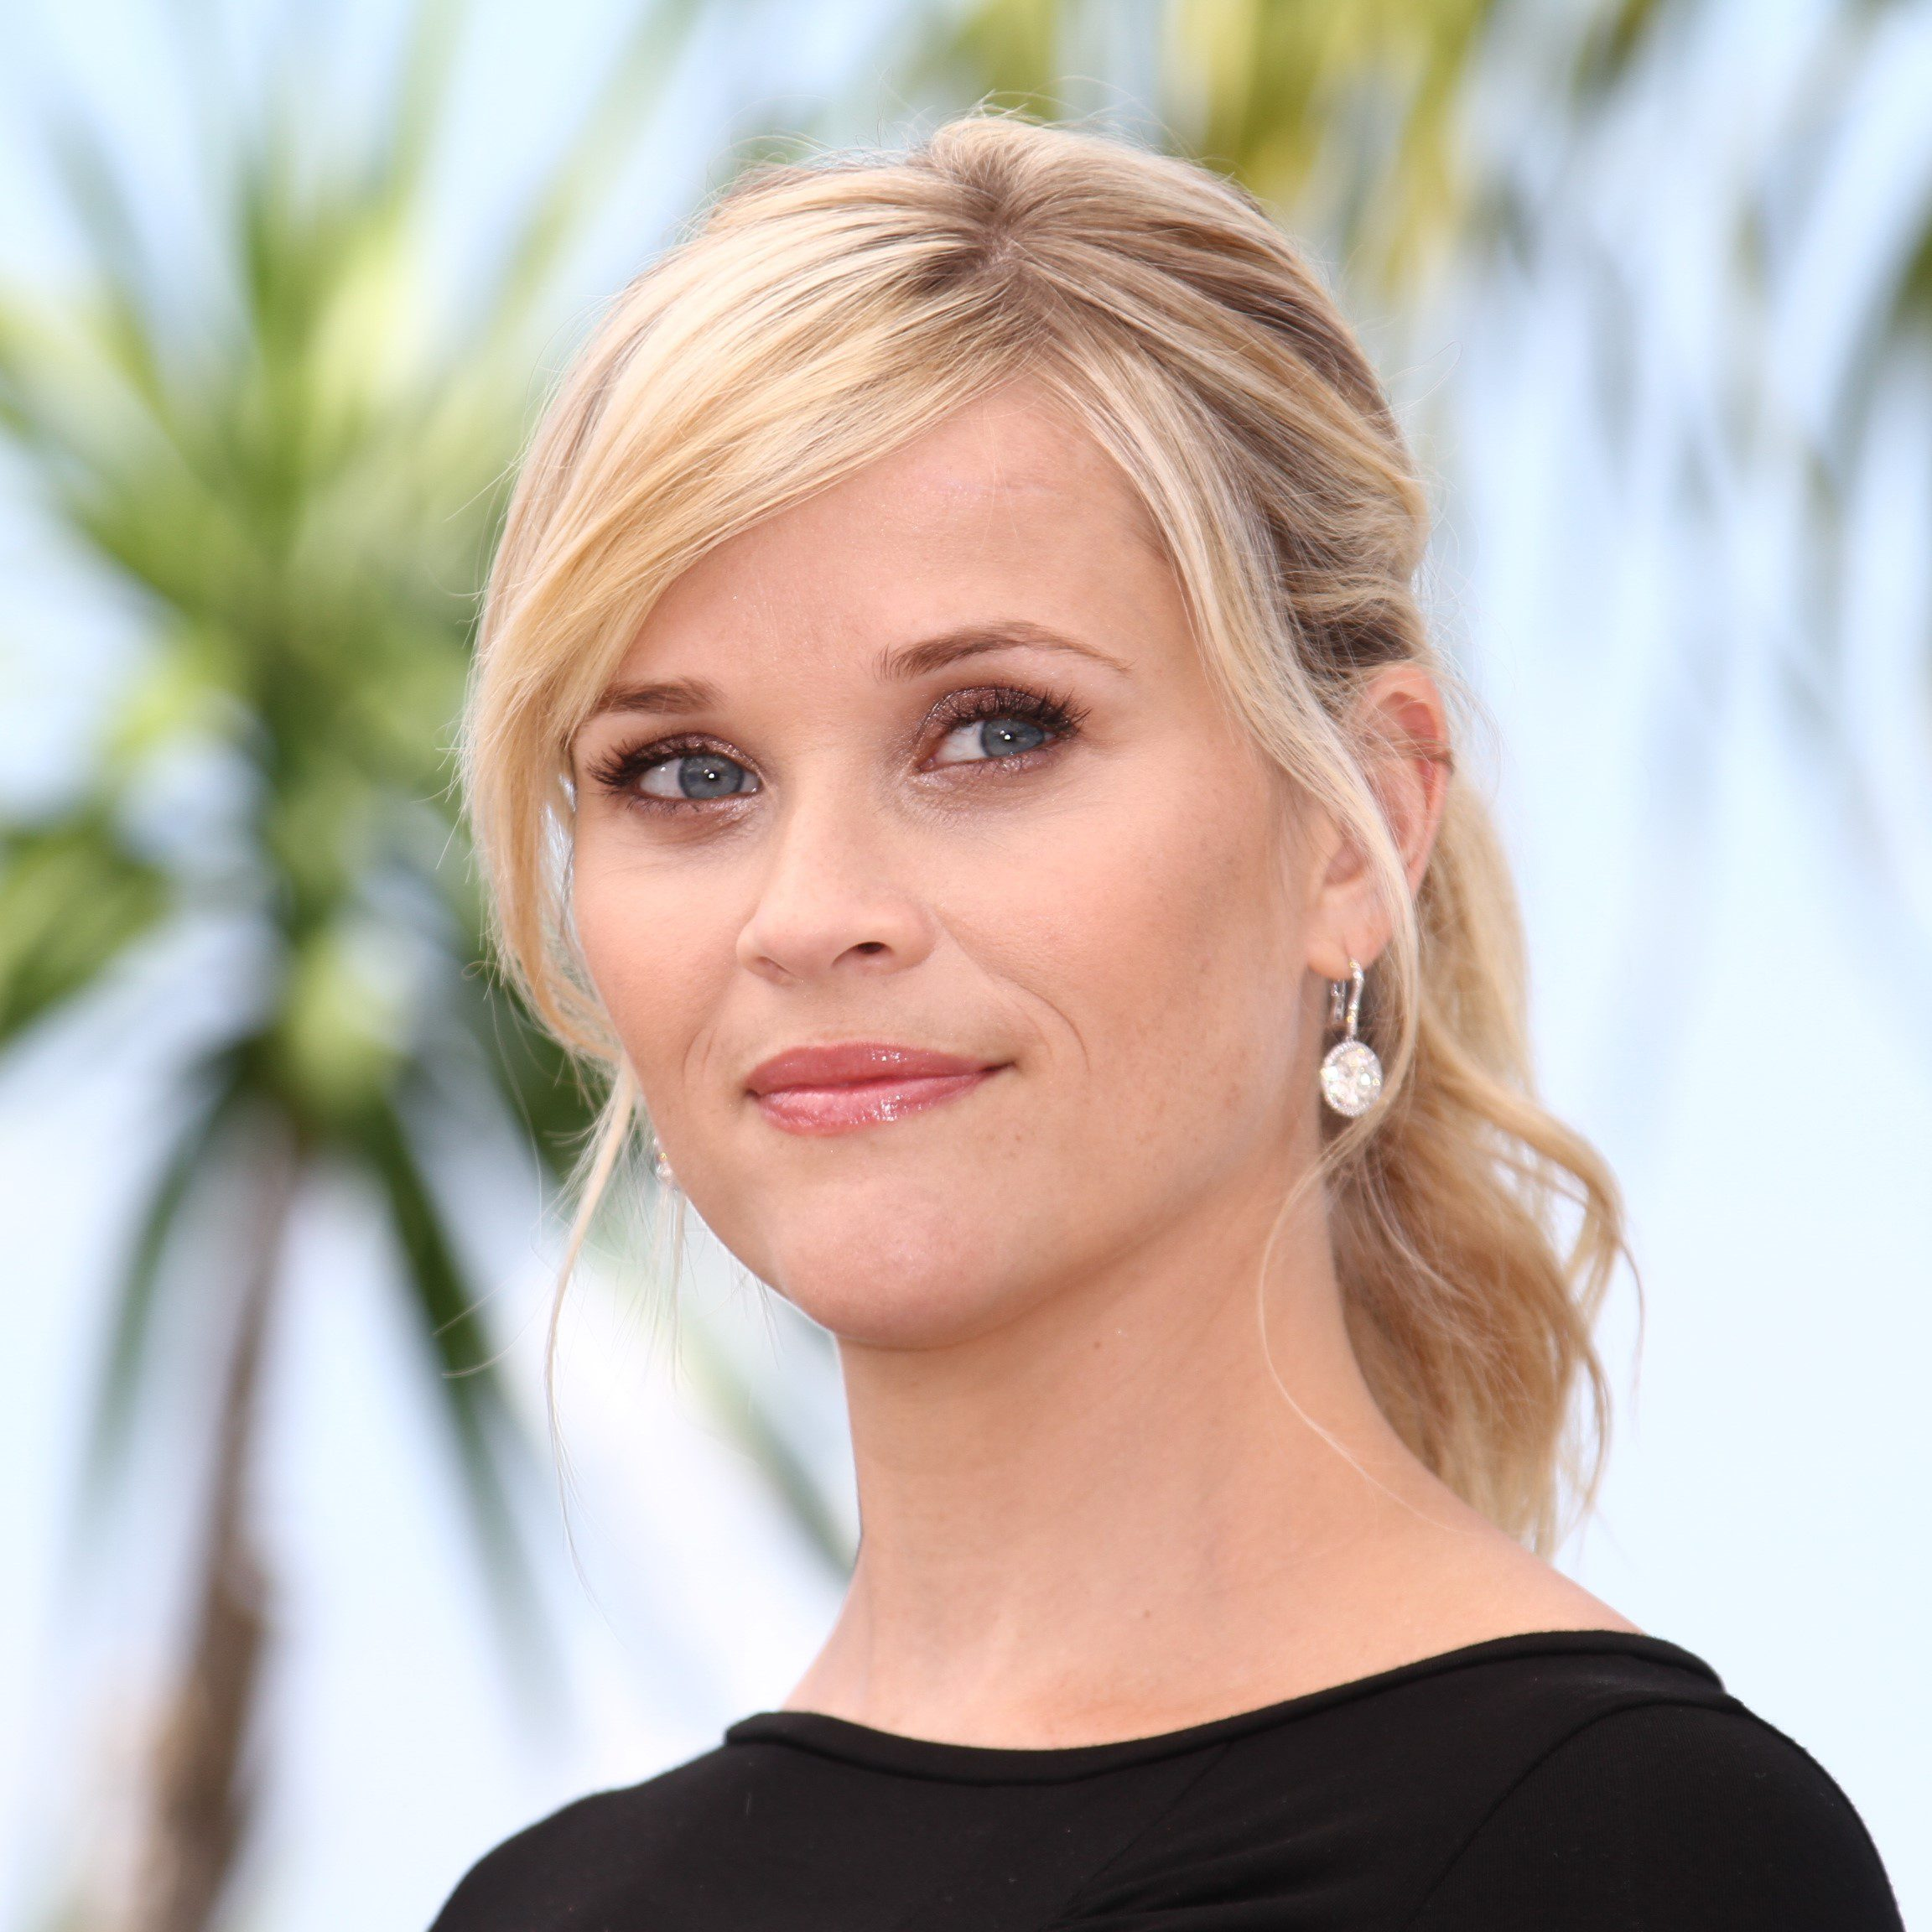 Reese Witherspoon's Side Bangs